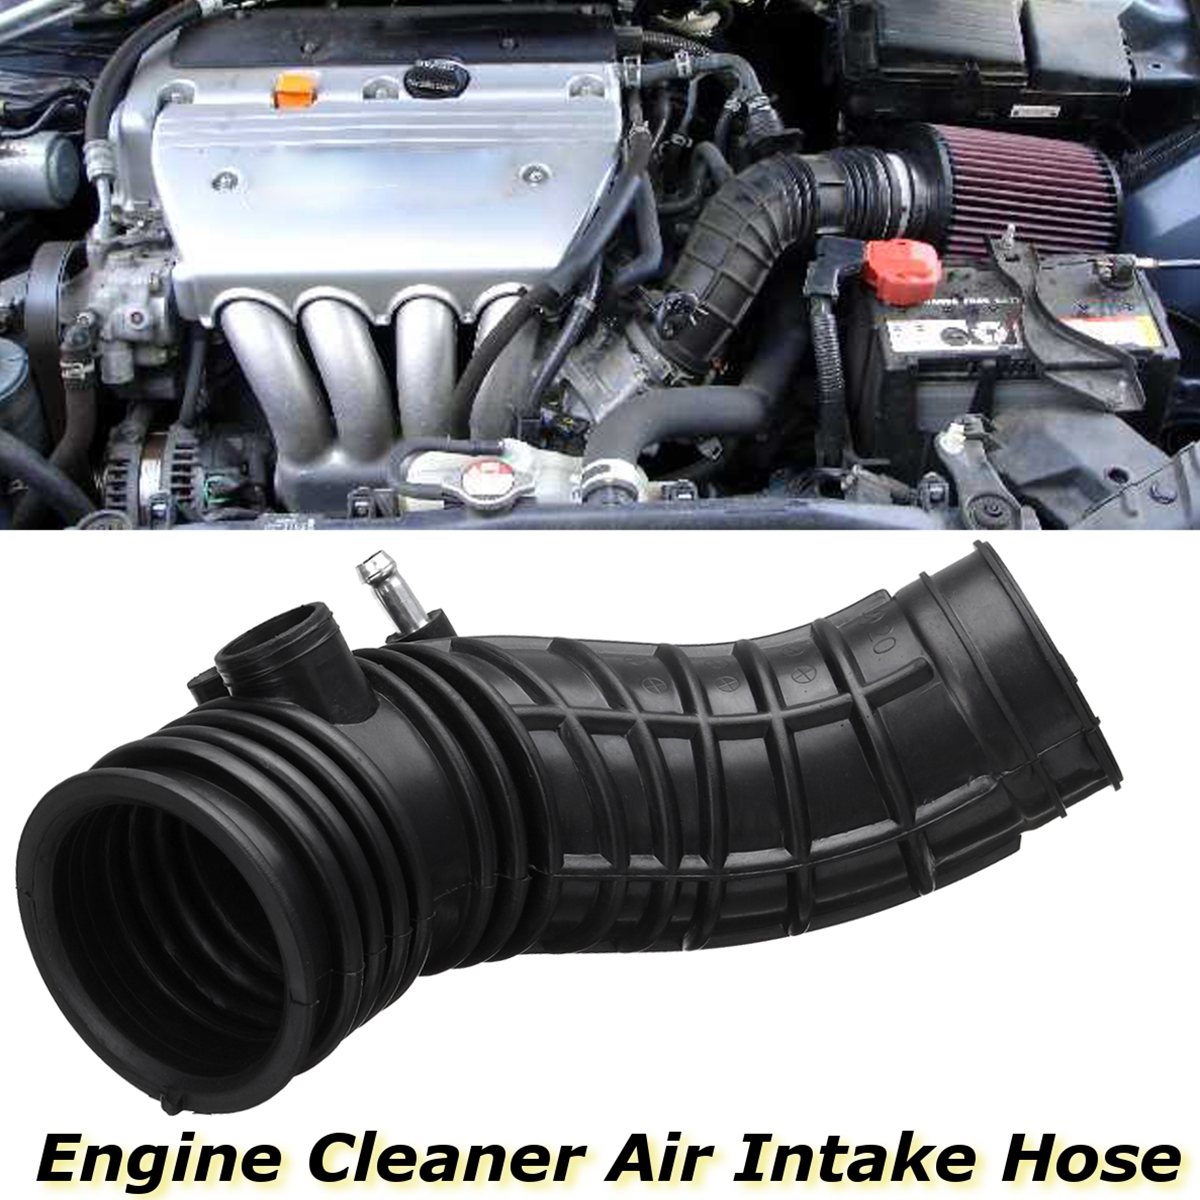 hight resolution of for acura tsx 2004 2005 2006 2007 2008 aih551078h car auto engine rubber cleaner air intake hose